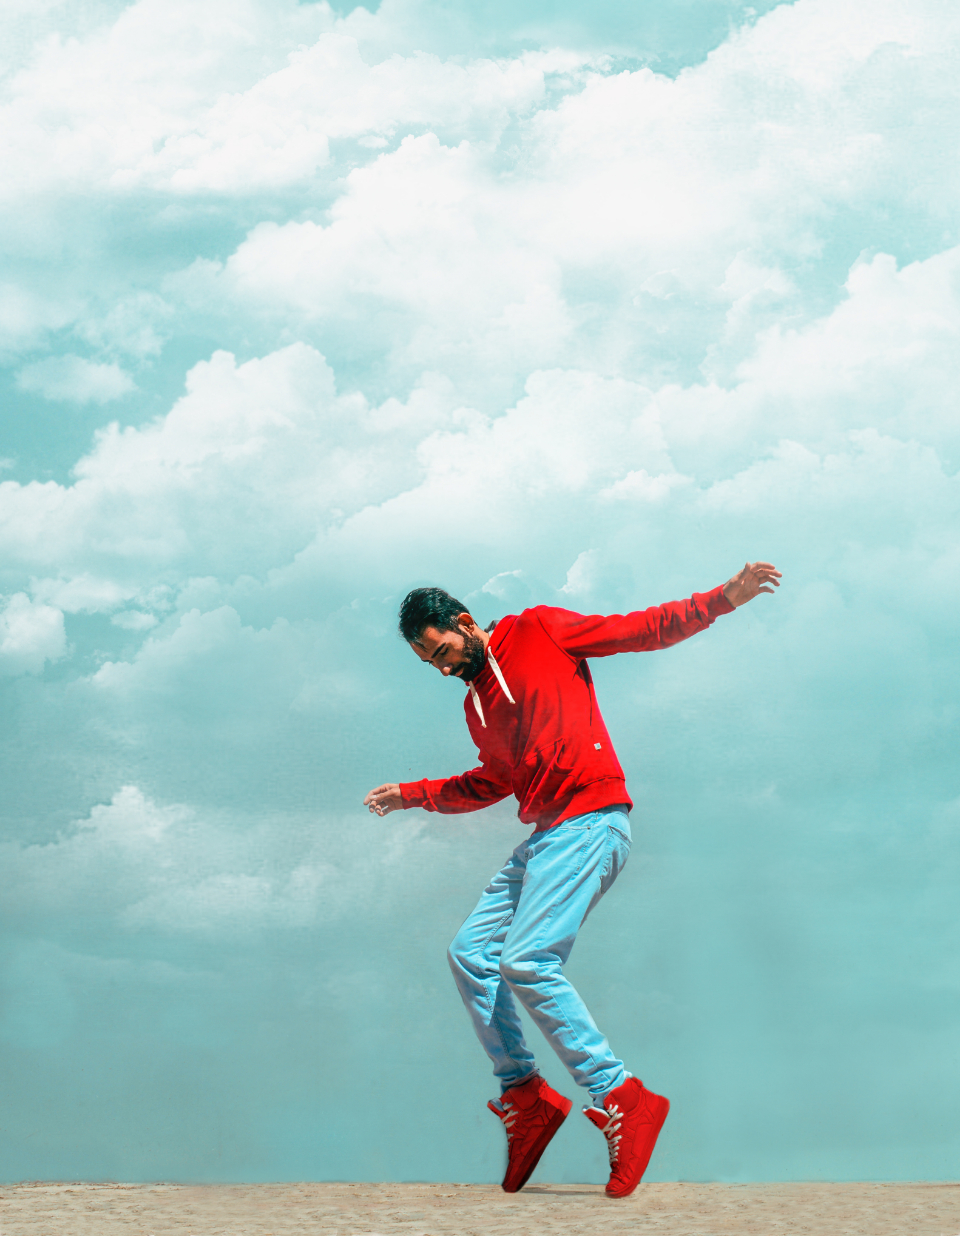 man casual dance red hoodie sweatshirt balance fun clouds pose portrait style